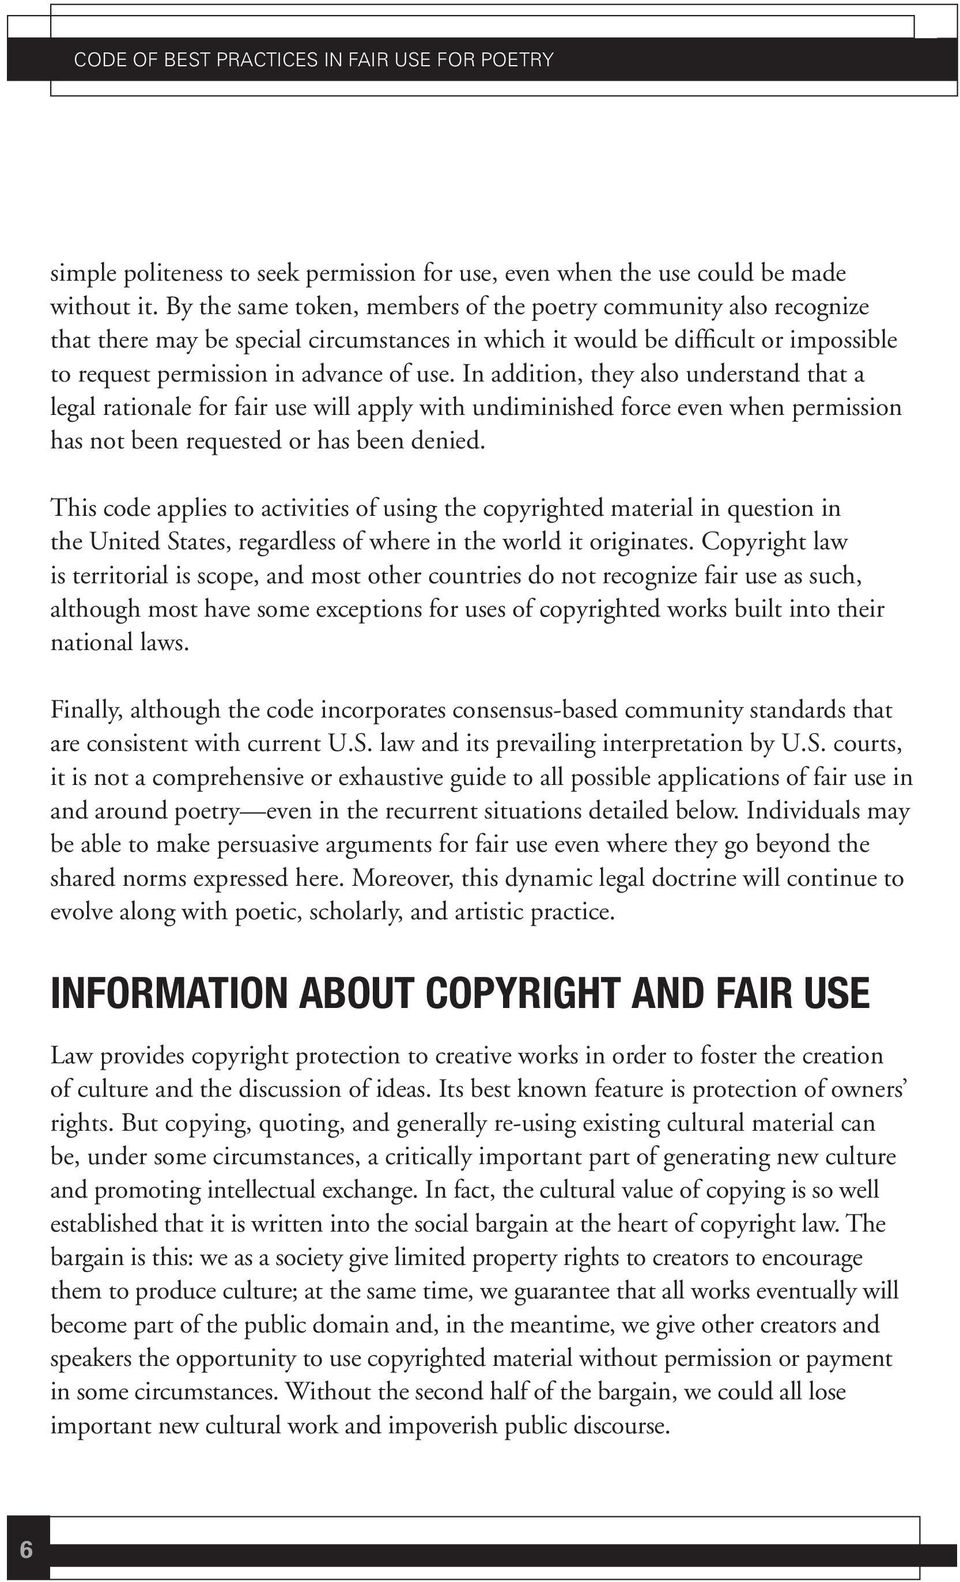 In addition, they also understand that a legal rationale for fair use will apply with undiminished force even when permission has not been requested or has been denied.